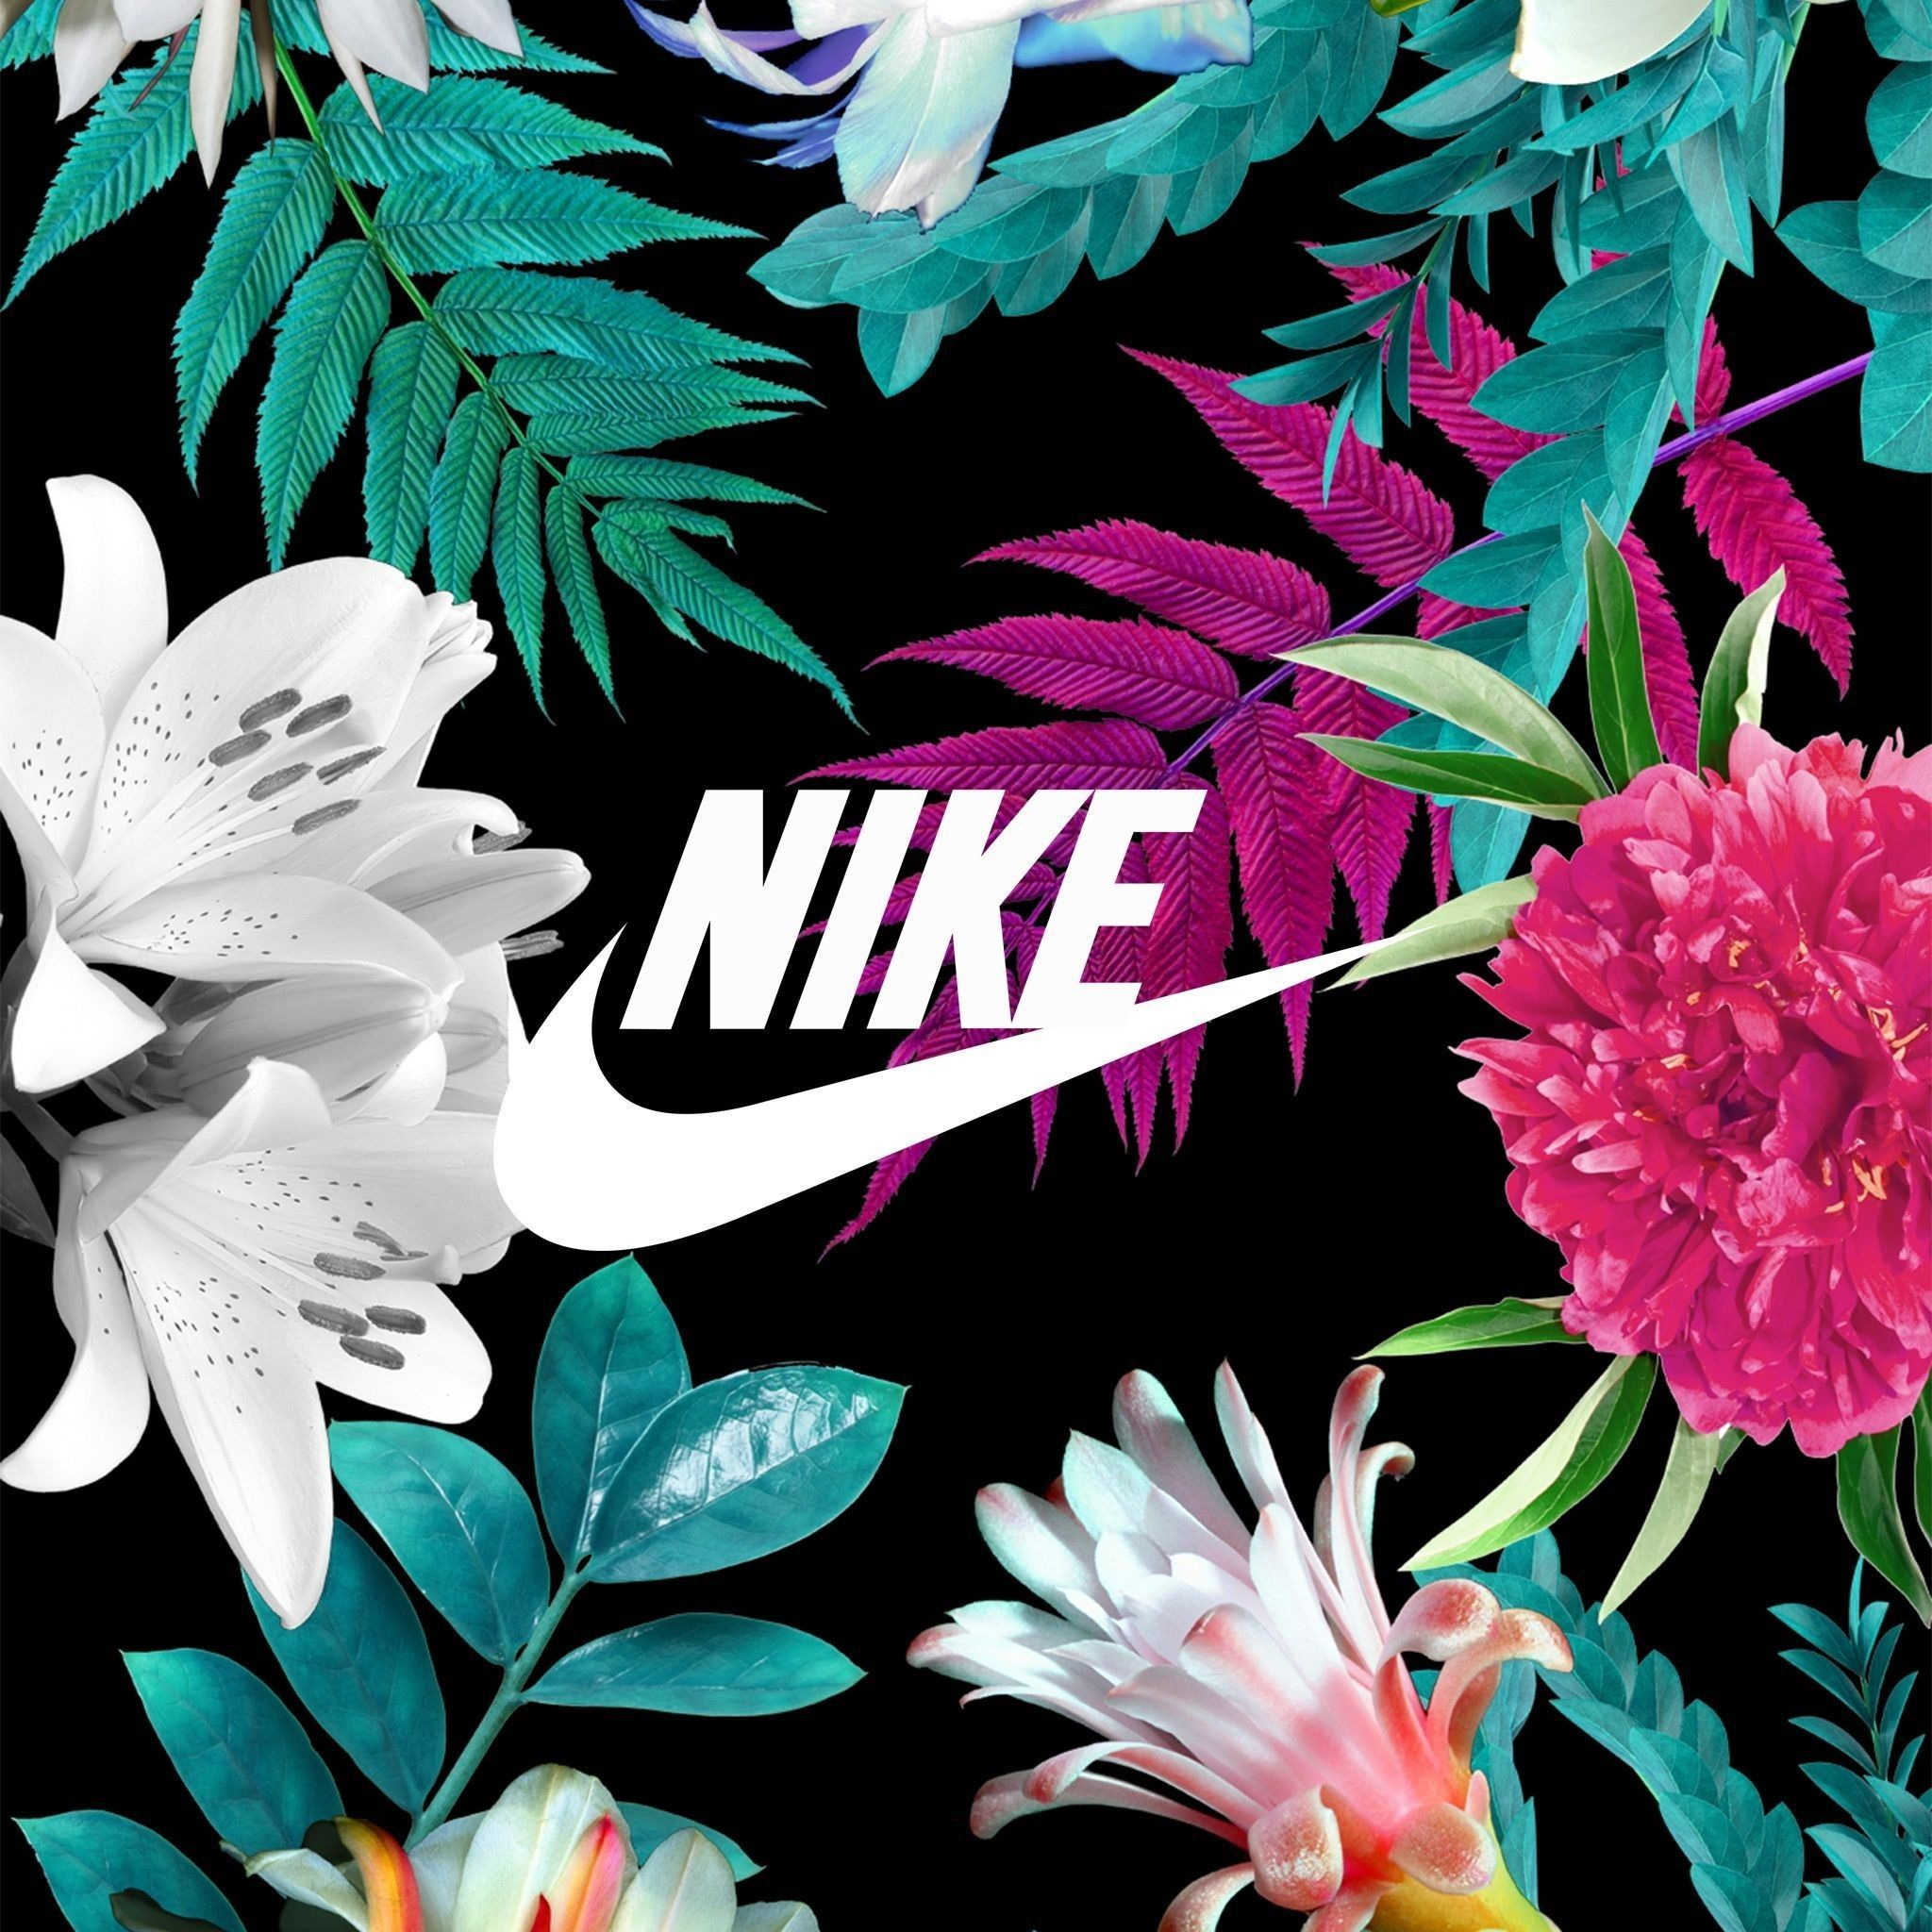 Nike Flower Wallpapers Top Free Nike Flower Backgrounds